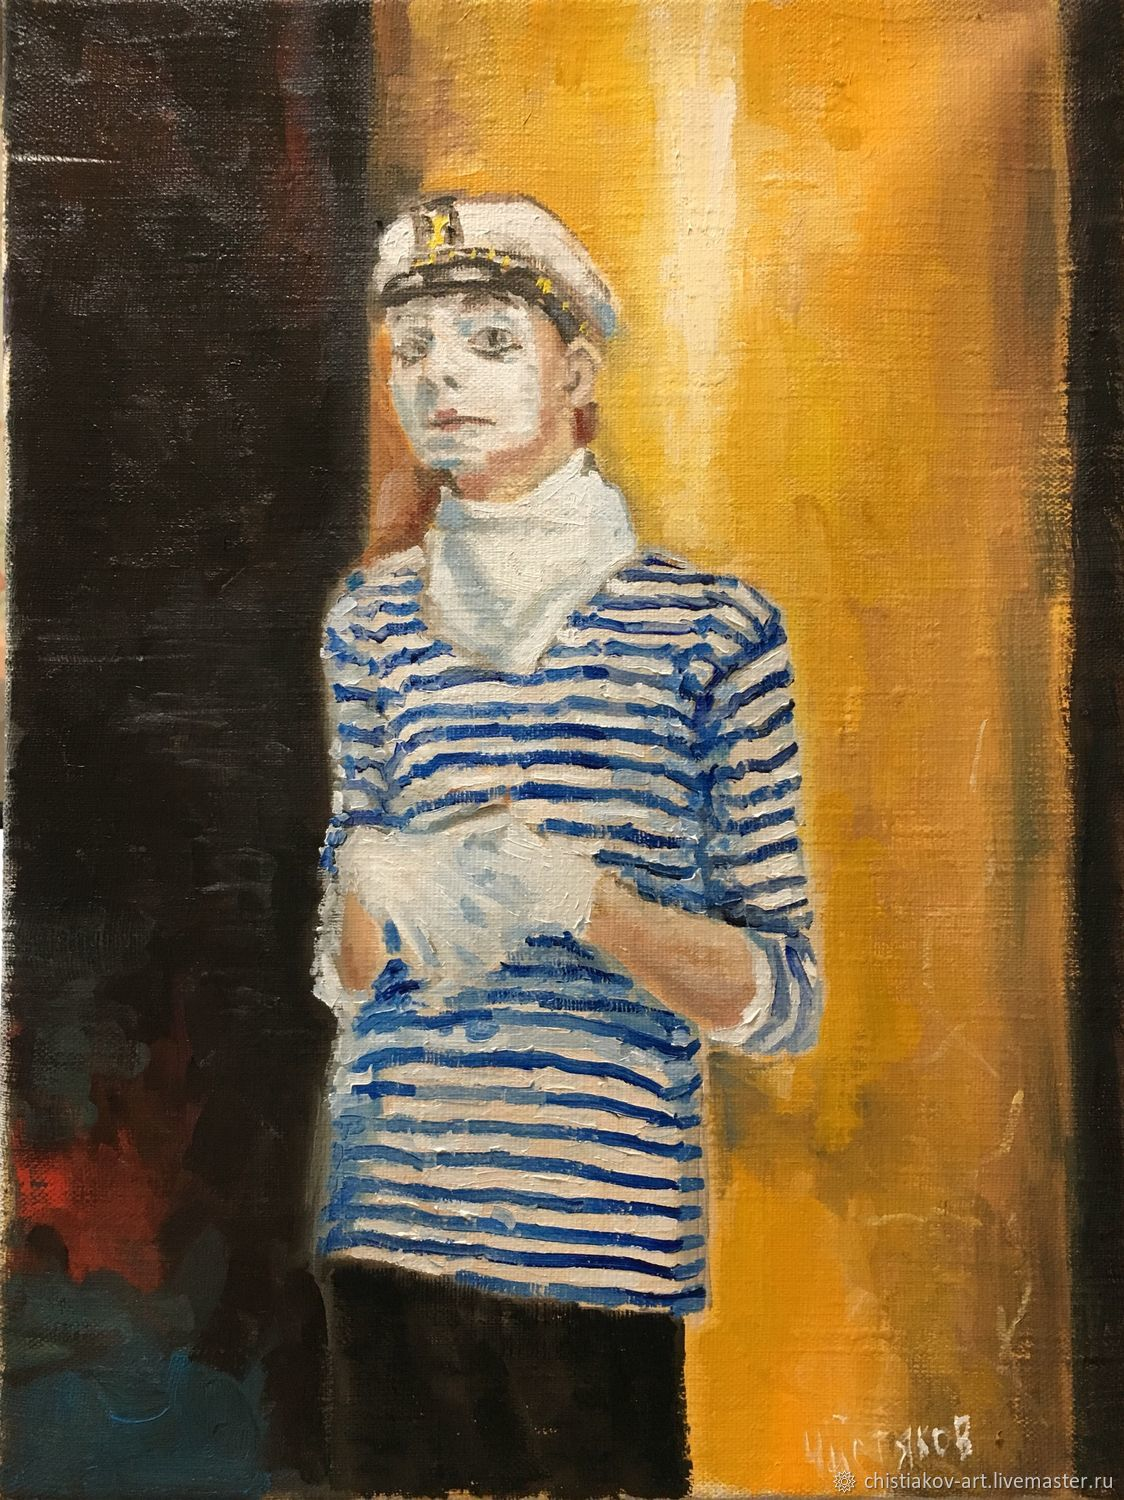 The painting 'King of the streets' oil on canvas 40-30 cm, Pictures, St. Petersburg,  Фото №1